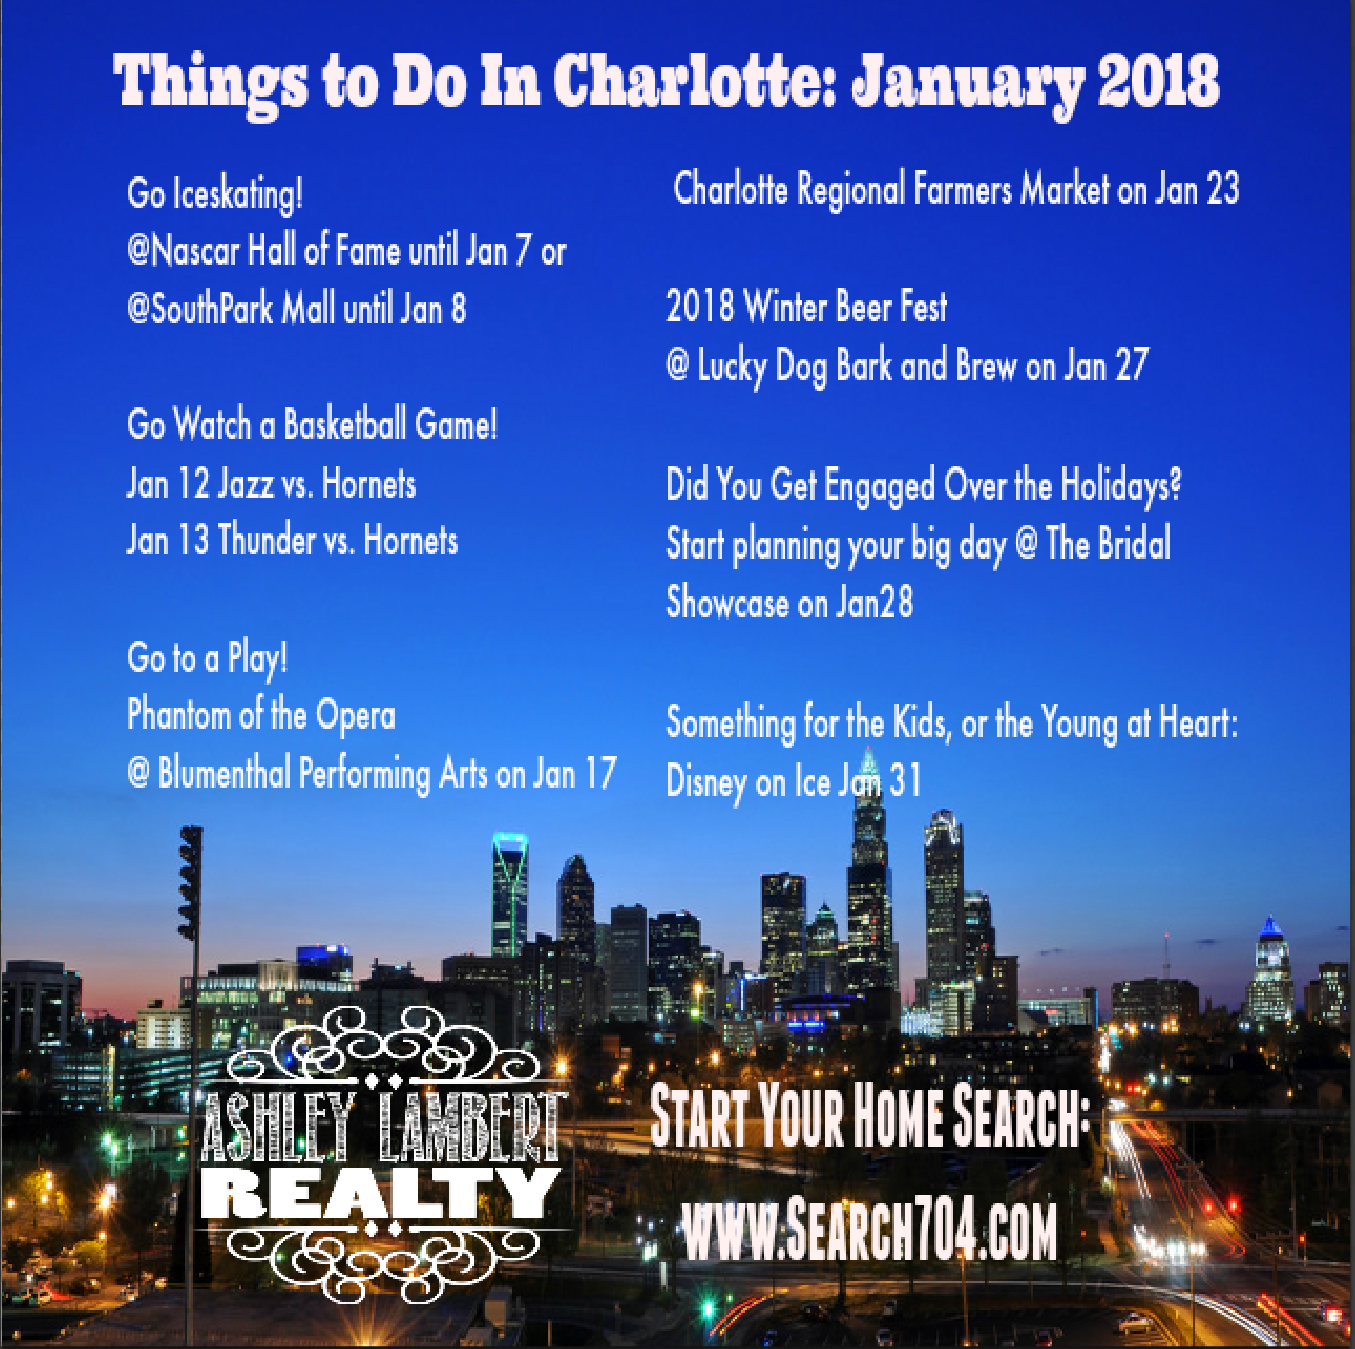 Things to Do in Charlotte January 2018